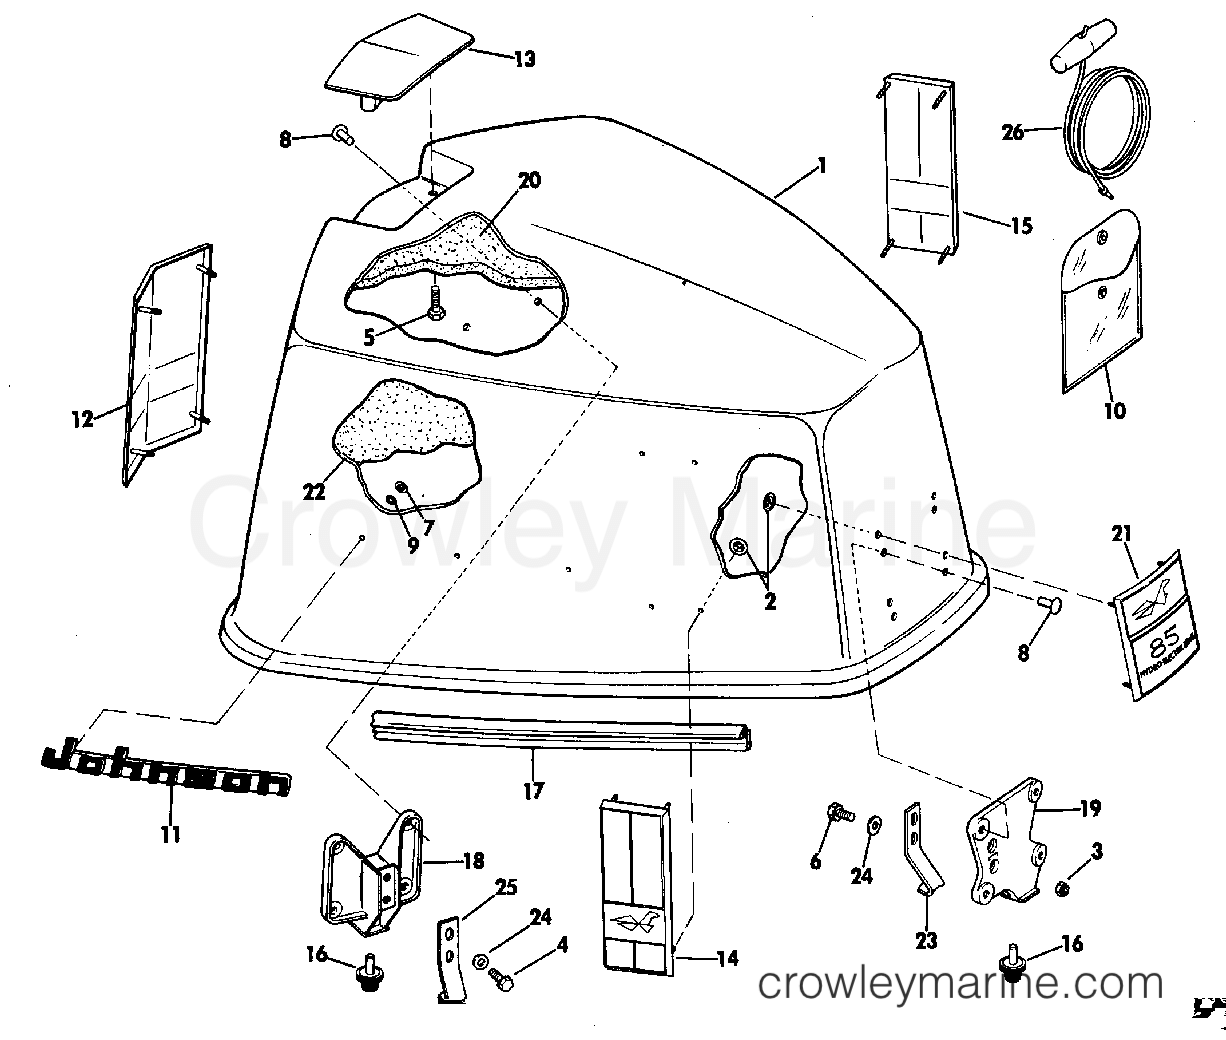 1969 Johnson Outboards 85 - 85ESL69E MOTOR COVER GROUP section